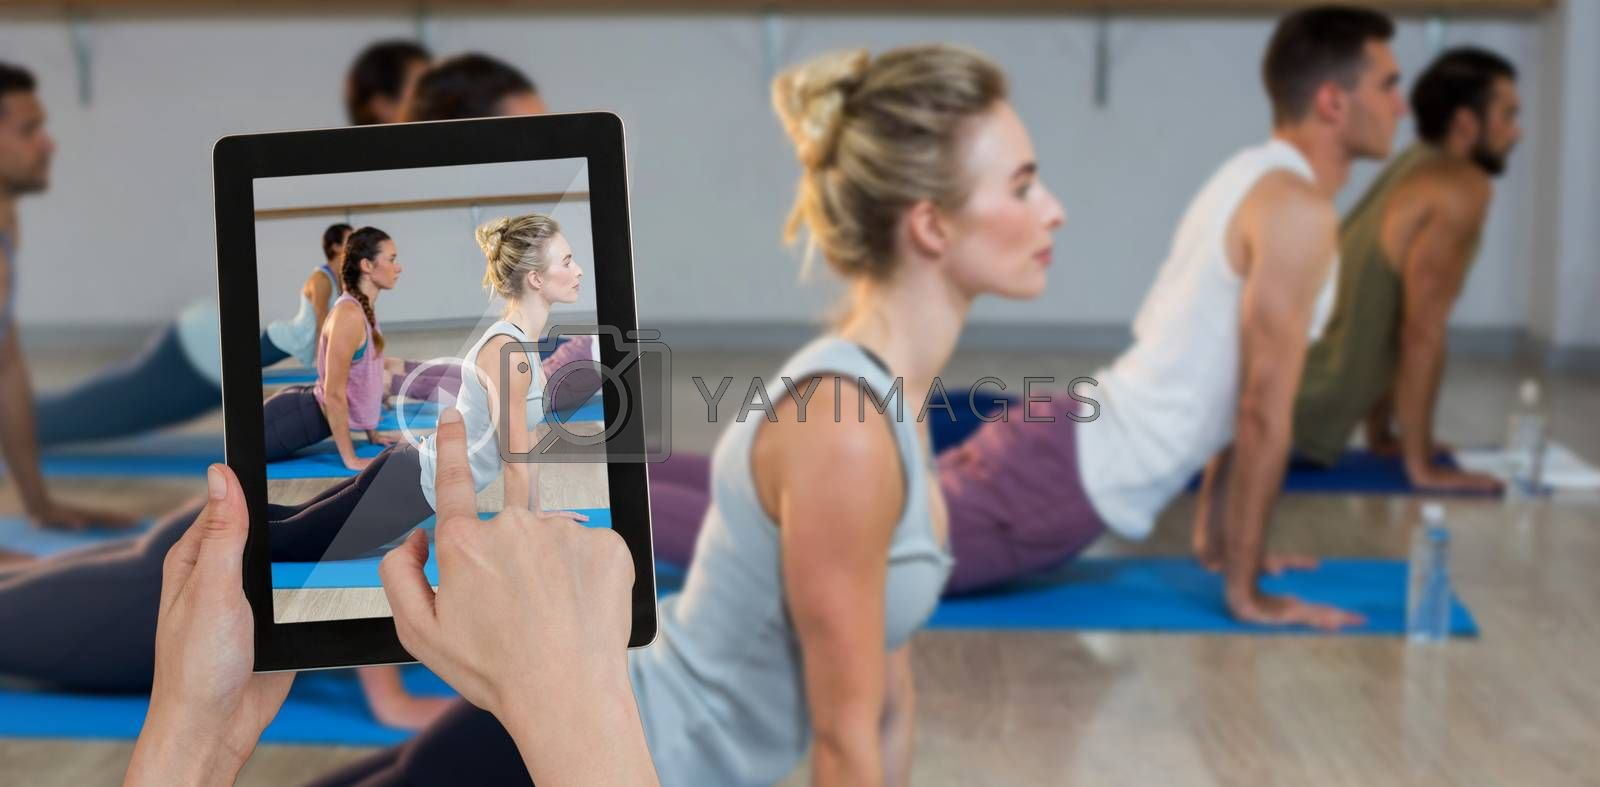 Hands touching digital tablet against white background against side view of people performing yoga